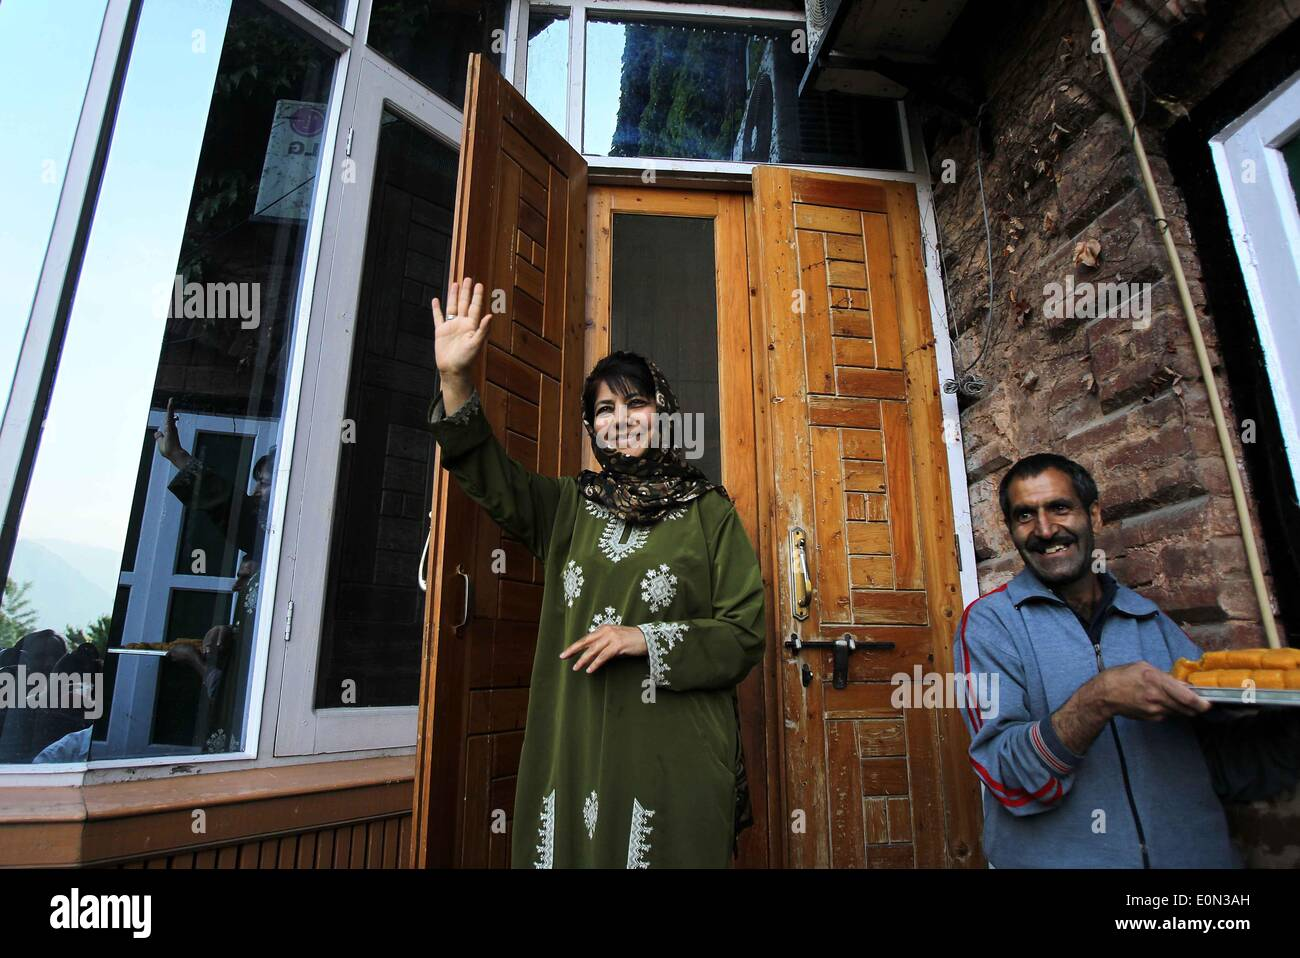 Srinagar, Srinagar the summer capital of Indian-controlled Kashmir. 16th May, 2014. Mehbooba Mufti, president of Indian controlled Kashmir's main opposition party, Peoples Democratic Party (PDP), waves to her supporters after she was declared winner for a parliamentary seat, in Srinagar the summer capital of Indian-controlled Kashmir, May 16, 2014. The region's main opposition Peoples Democratic Party (PDP) and right-wing Hindu nationalist Bhartiya Janta Party (BJP) Friday swept polls by winning three seats each in the region, officials said. Credit:  Javed Dar/Xinhua/Alamy Live News - Stock Image